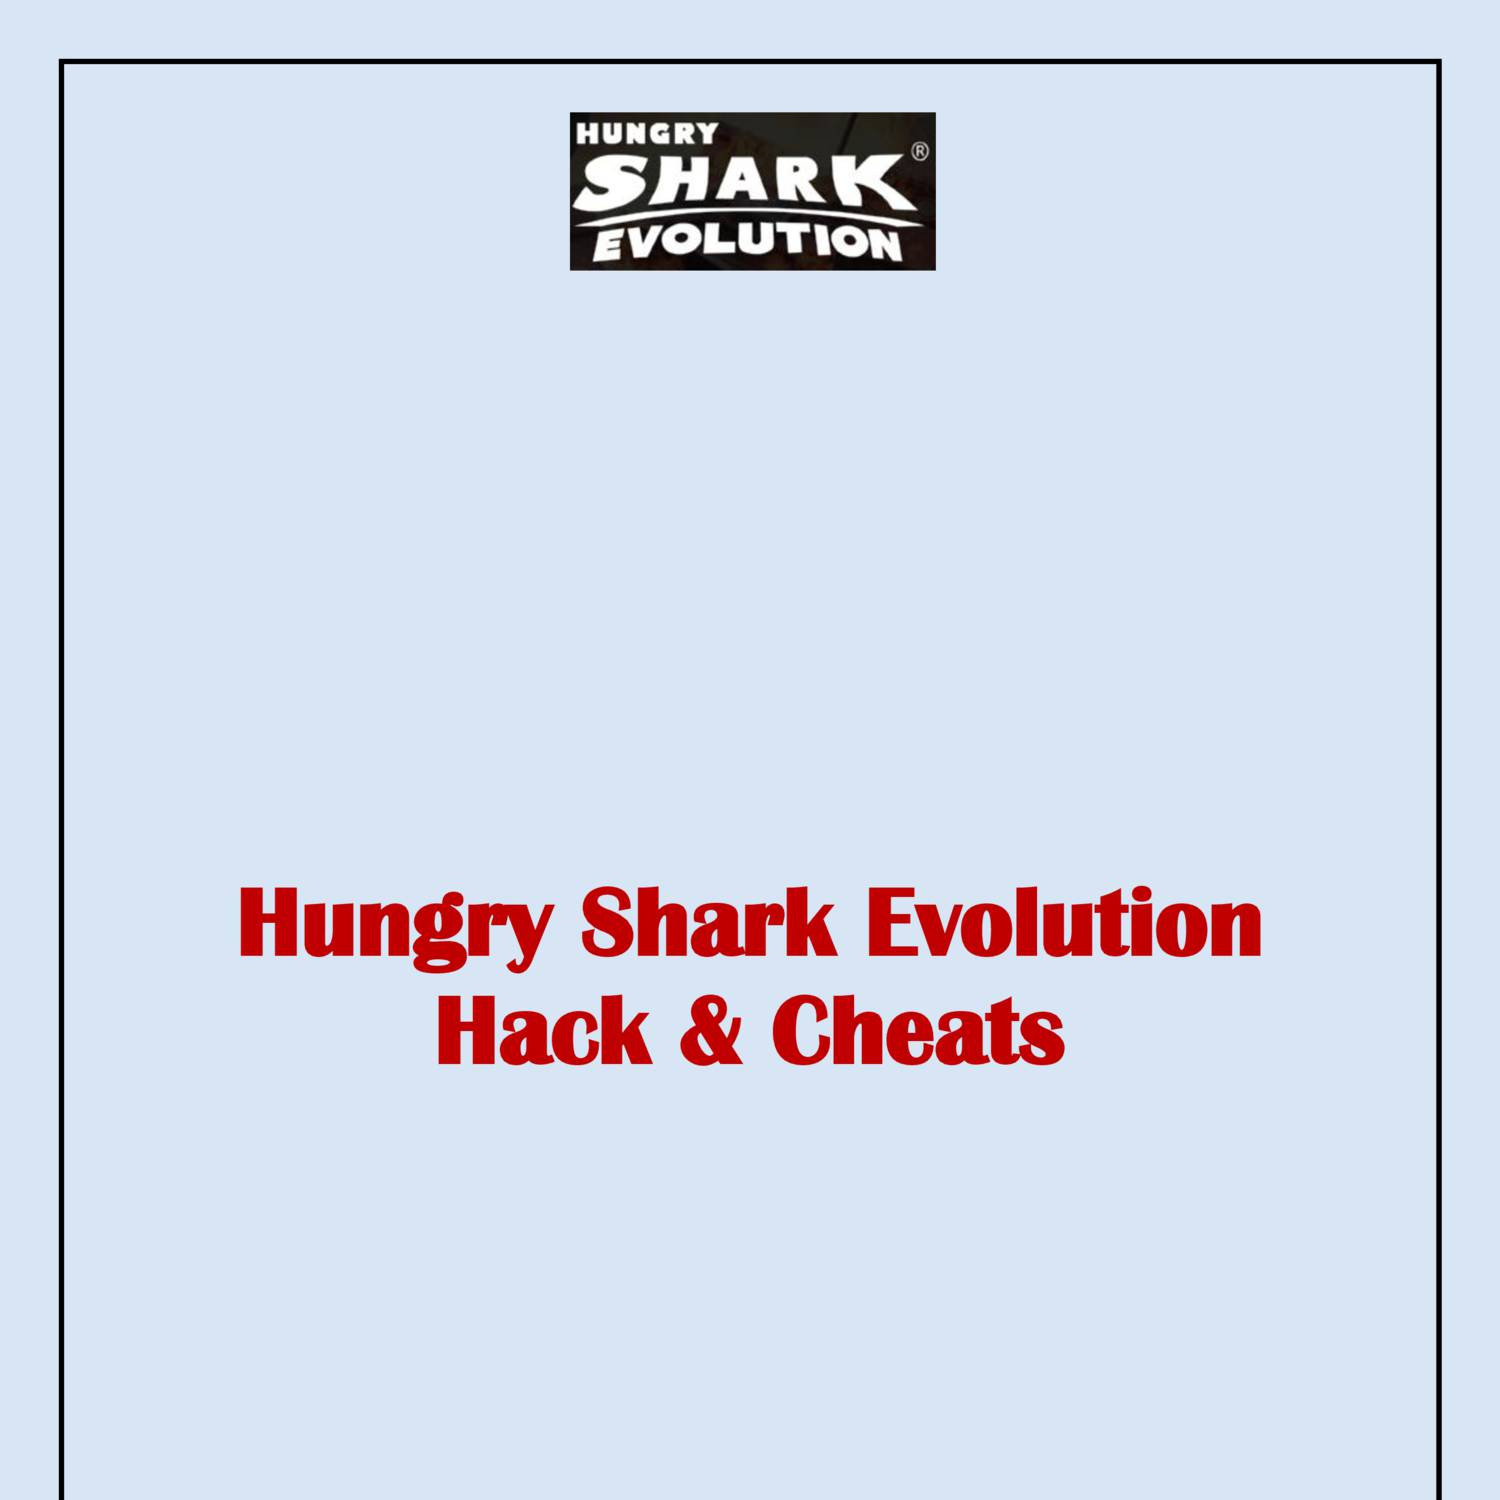 how to use cheat engine on hungry shark evolution